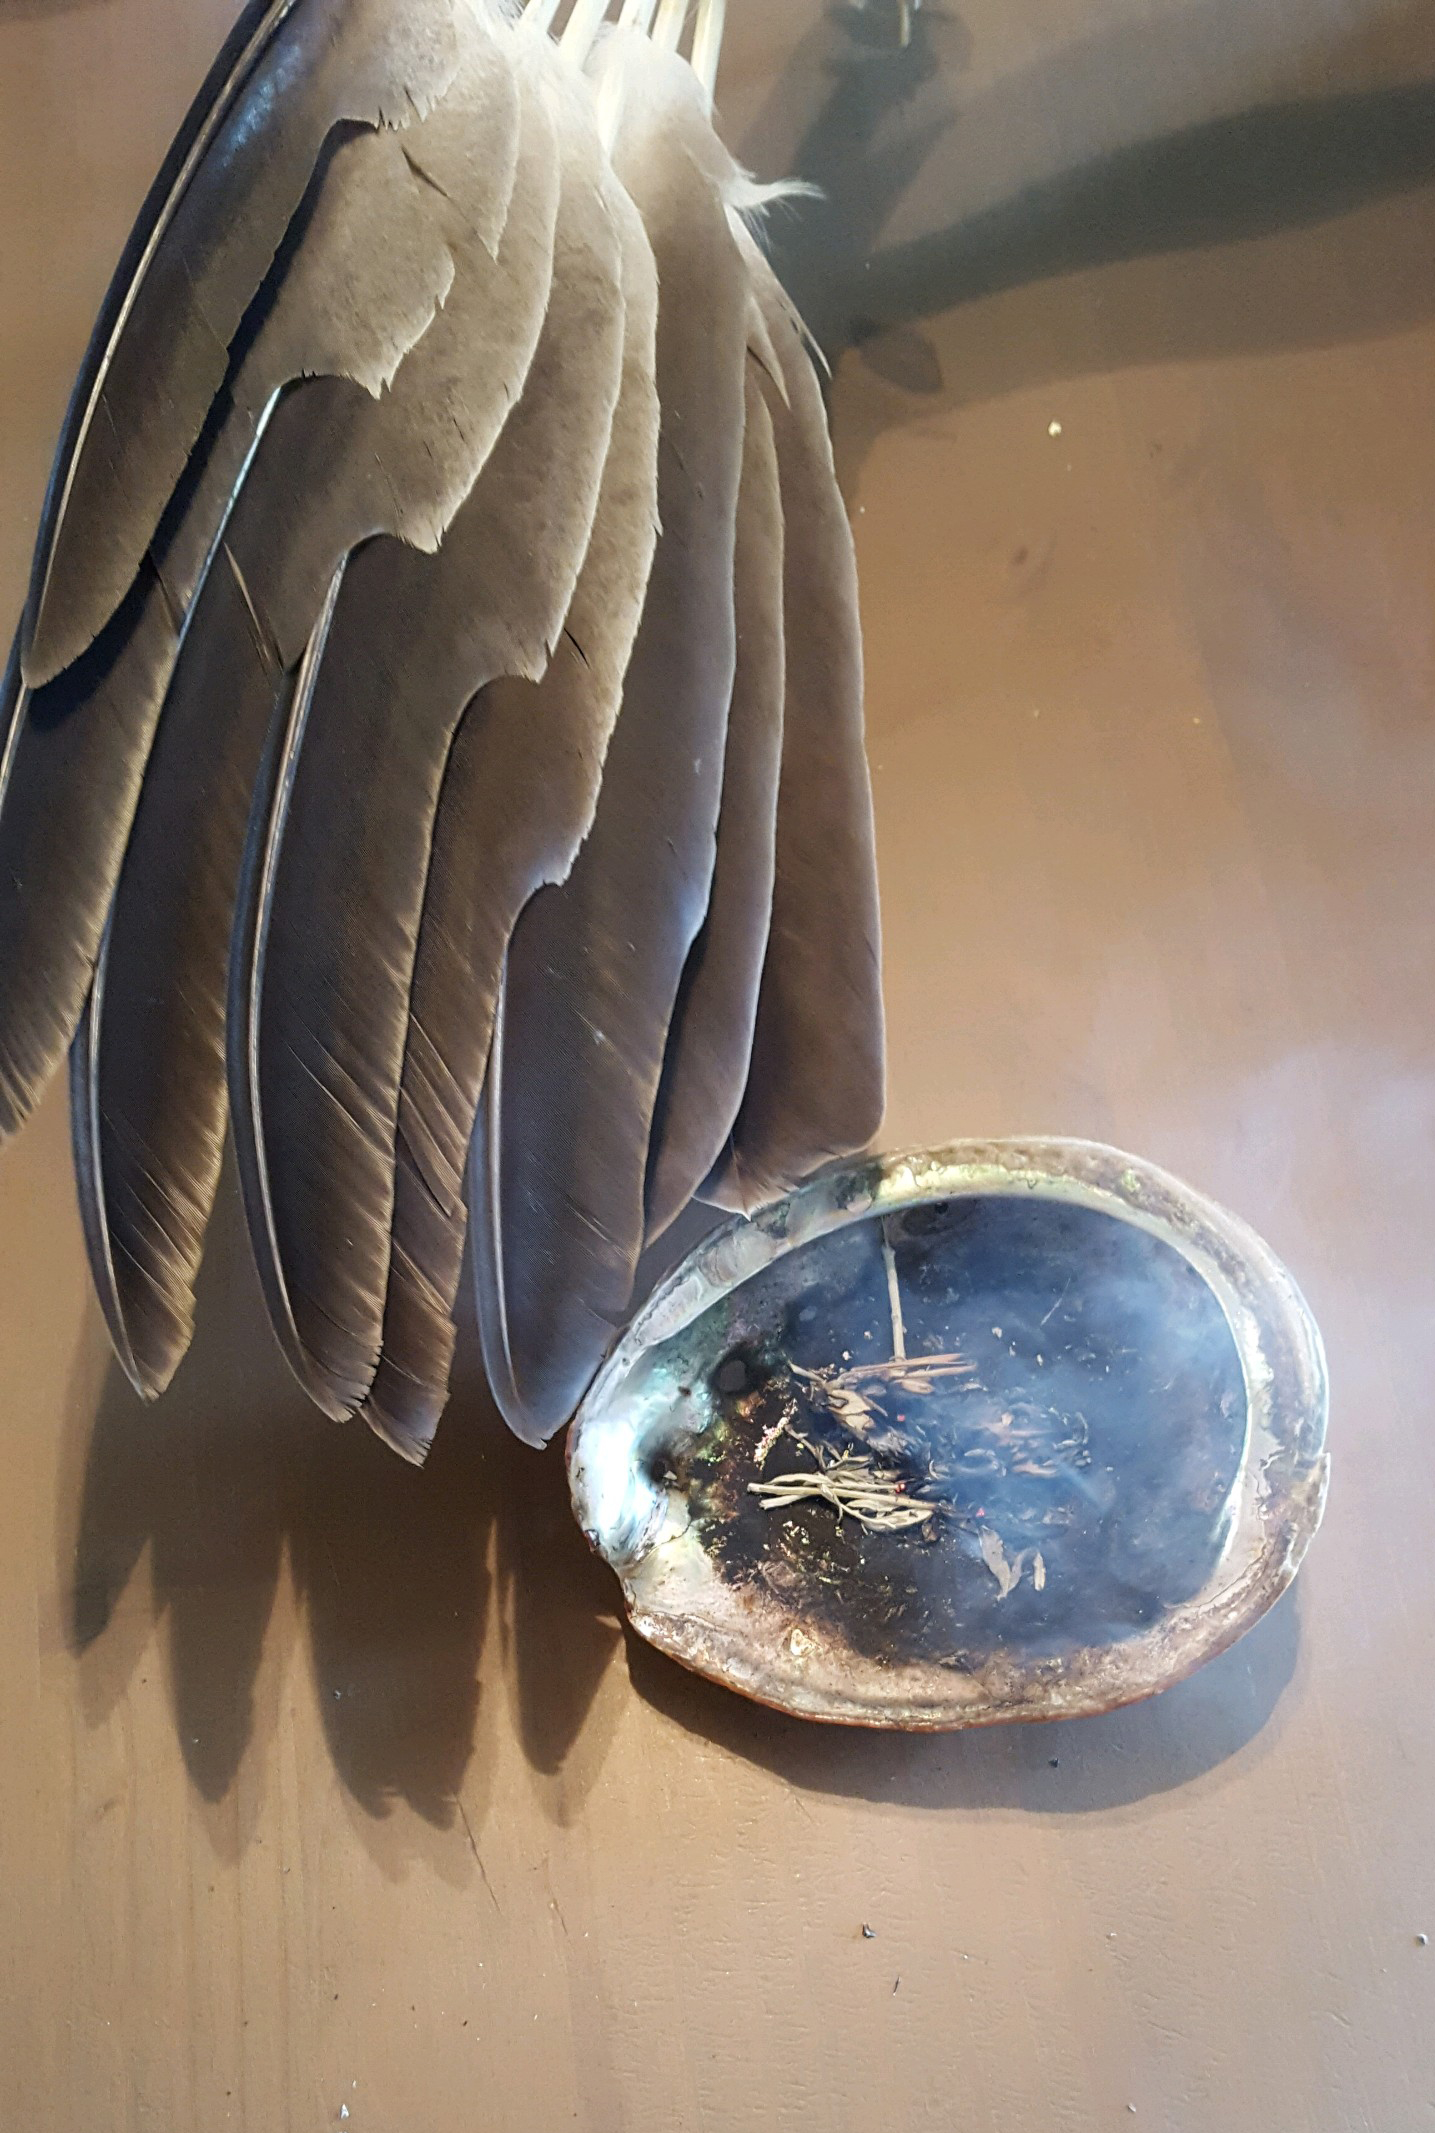 Eagle wing fan with burning sage in a shell.